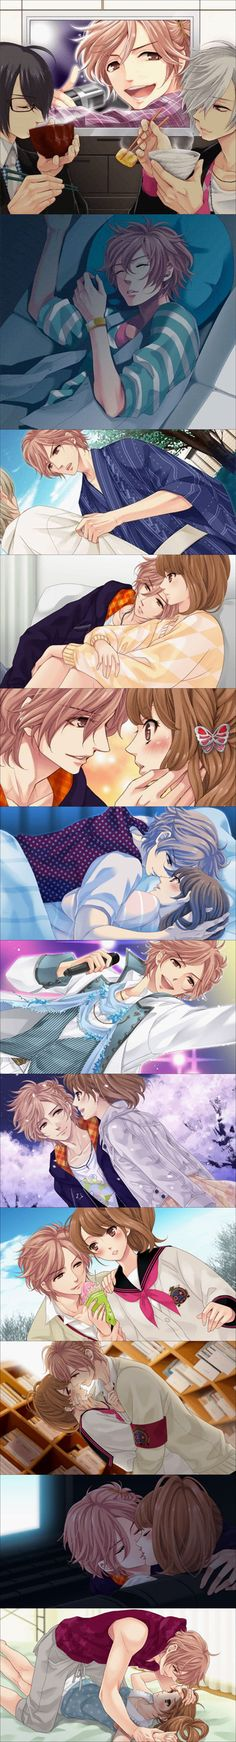 Brothers Conflict - Futo and Ema